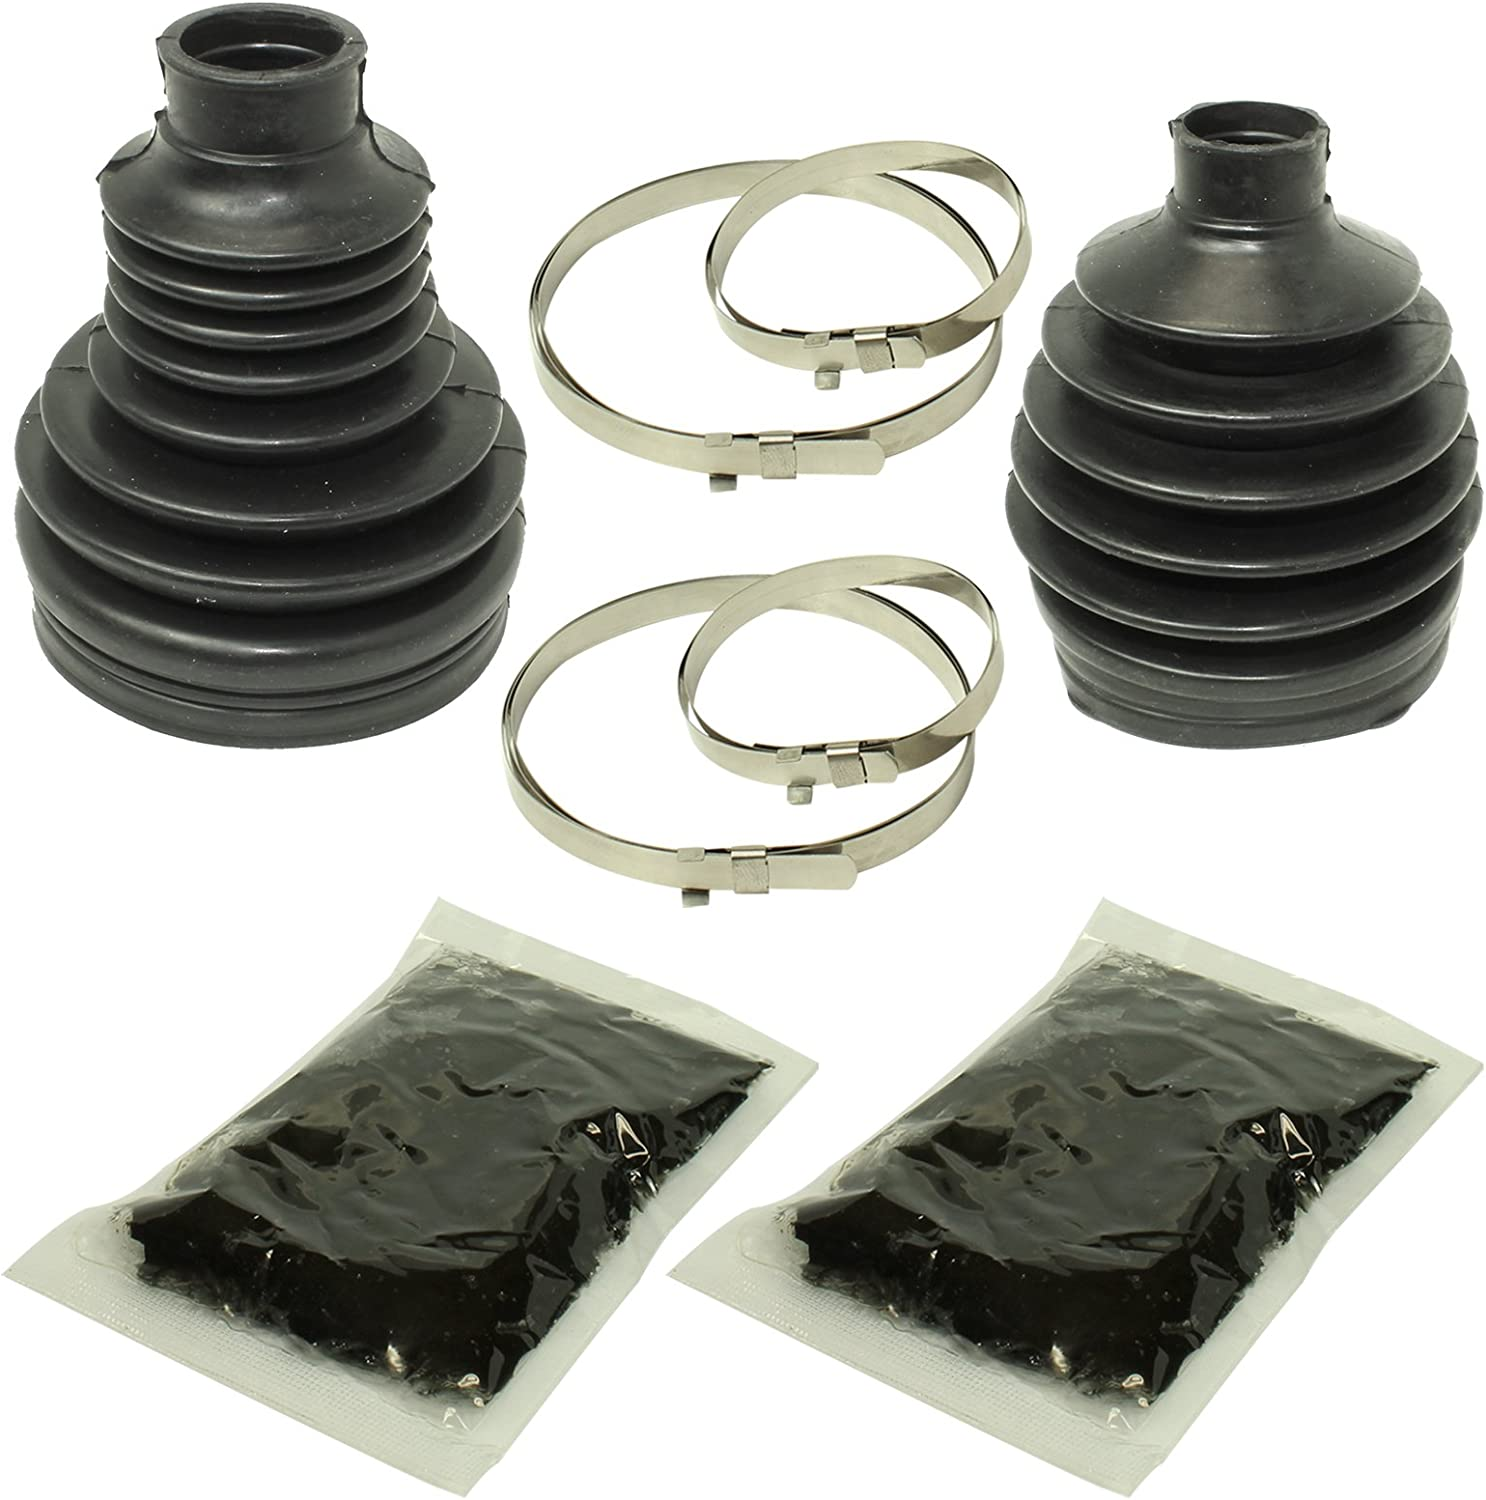 2014 2015 2016 Polaris Ranger 900 Front Inner Rubber CV Boot Kit